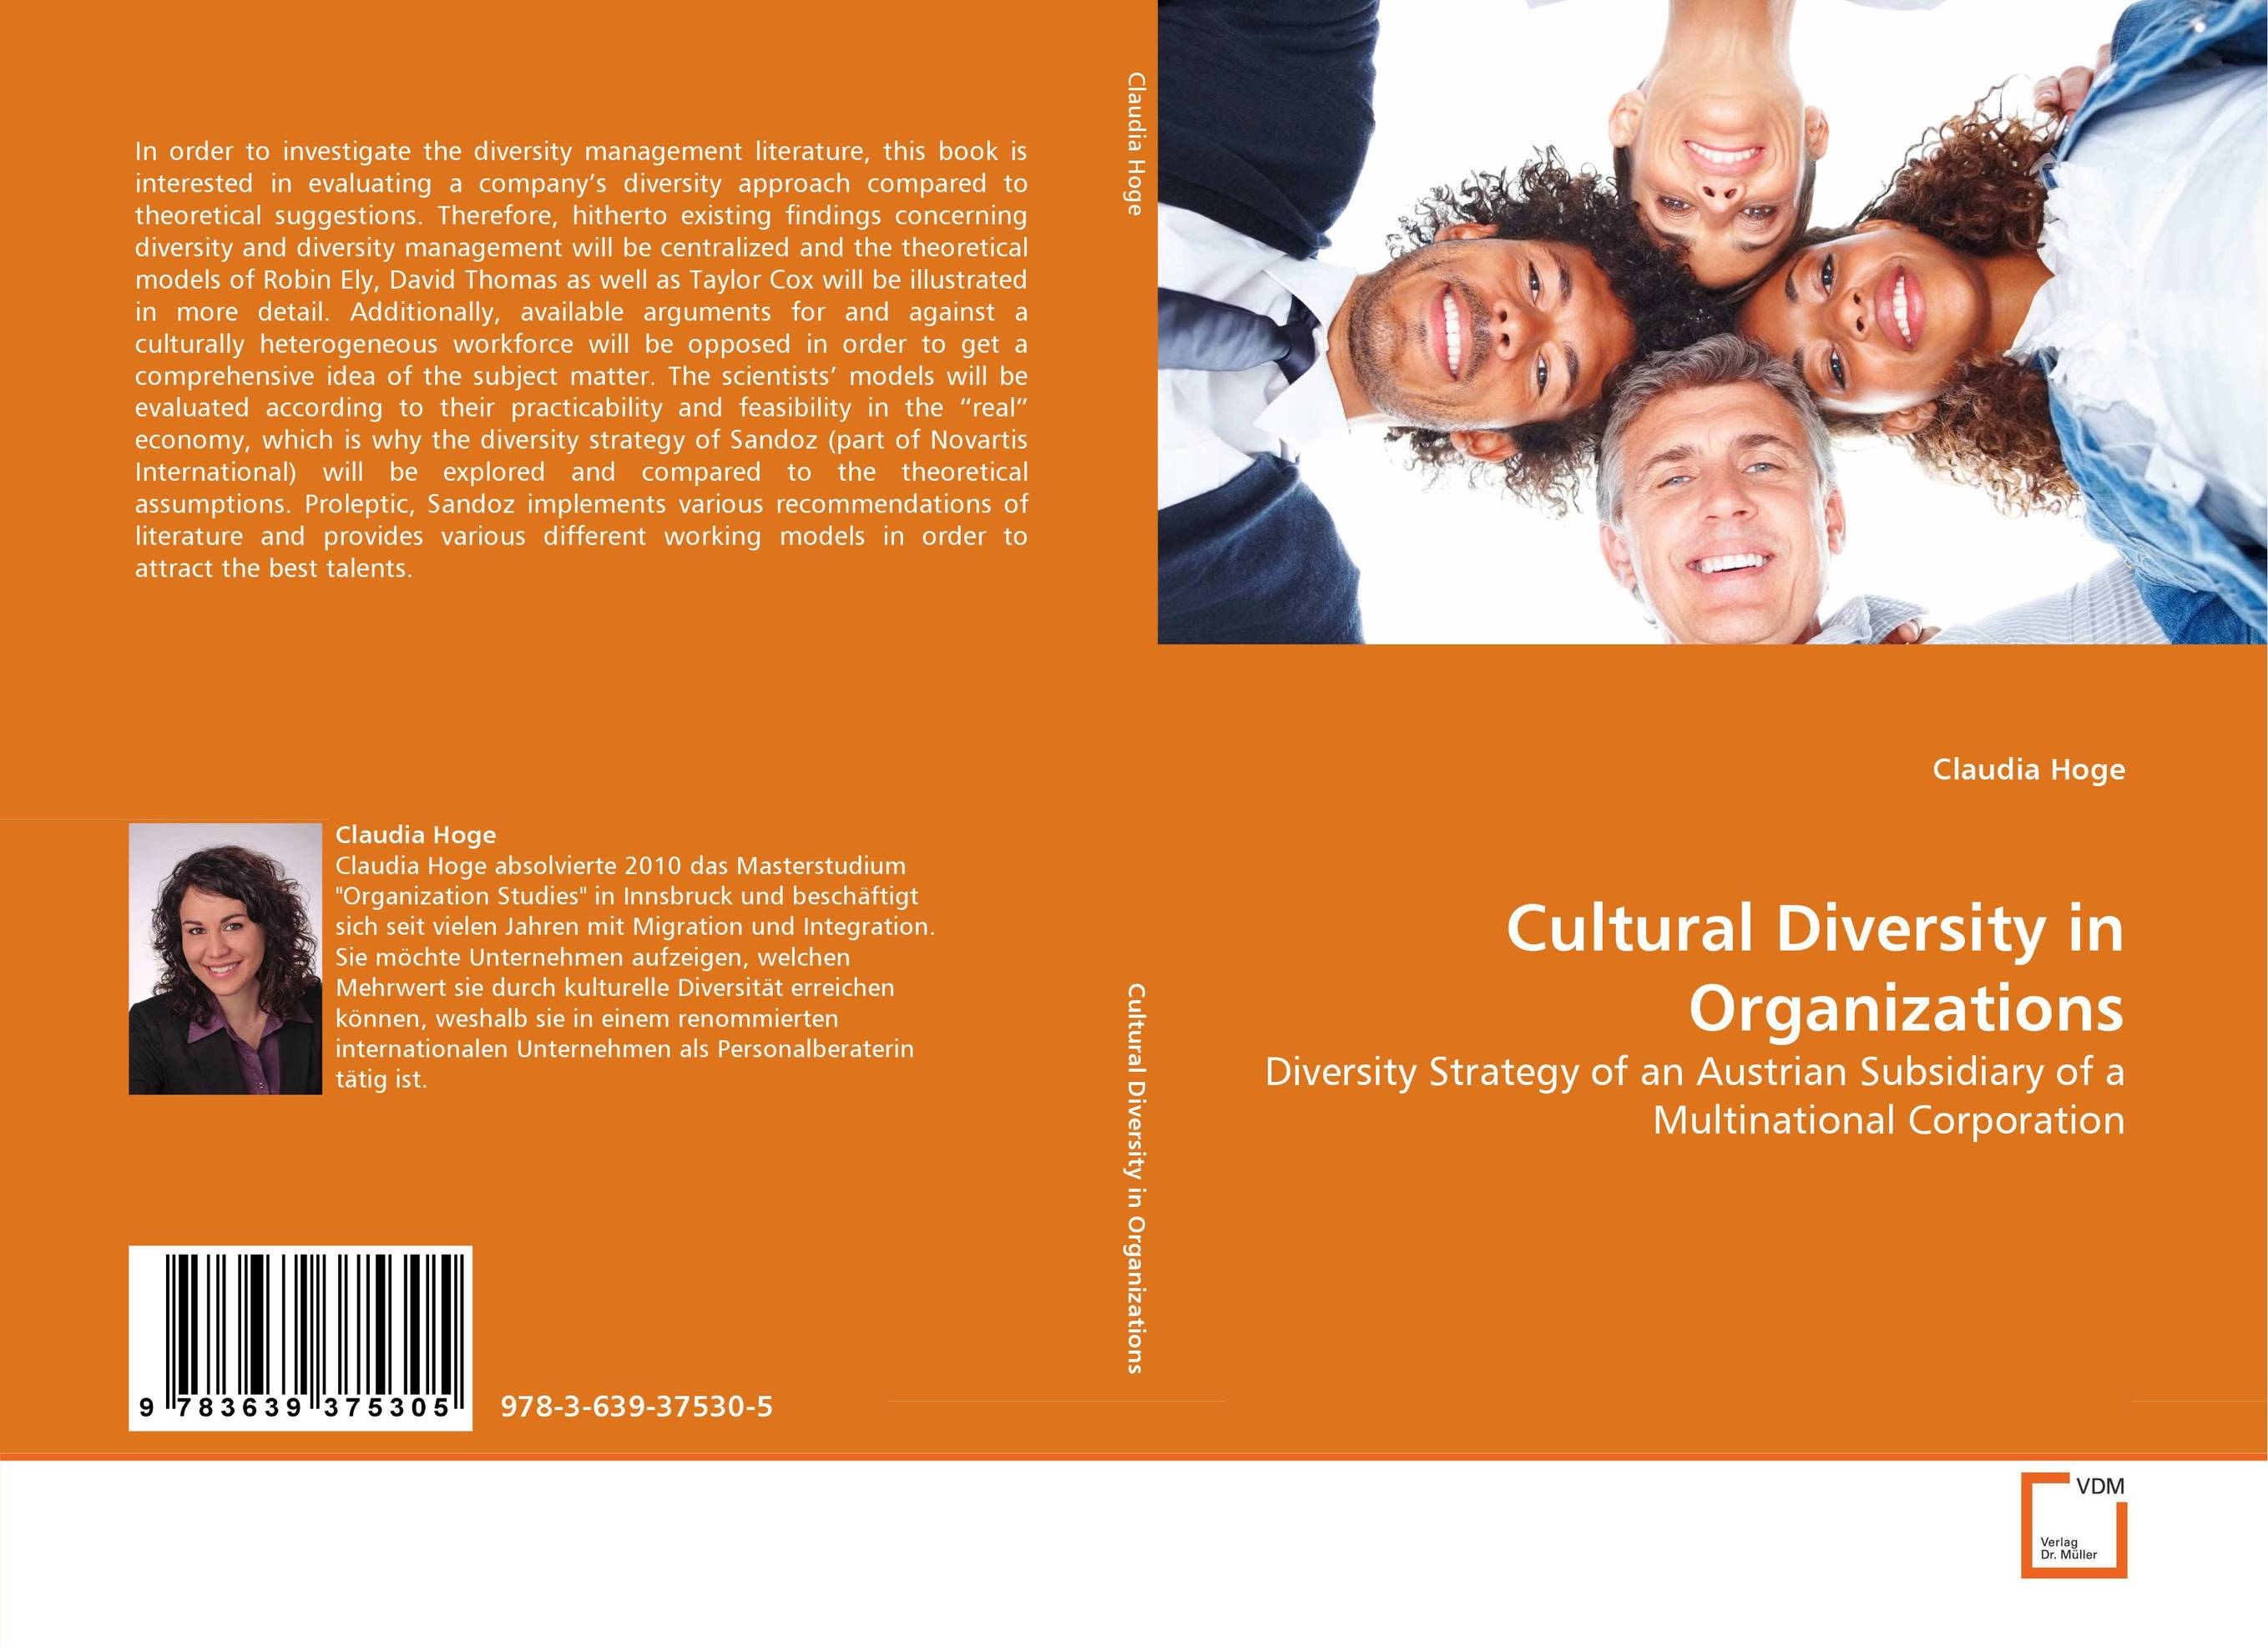 Cultural Diversity in Organizations orality online and the promotion of cultural diversity